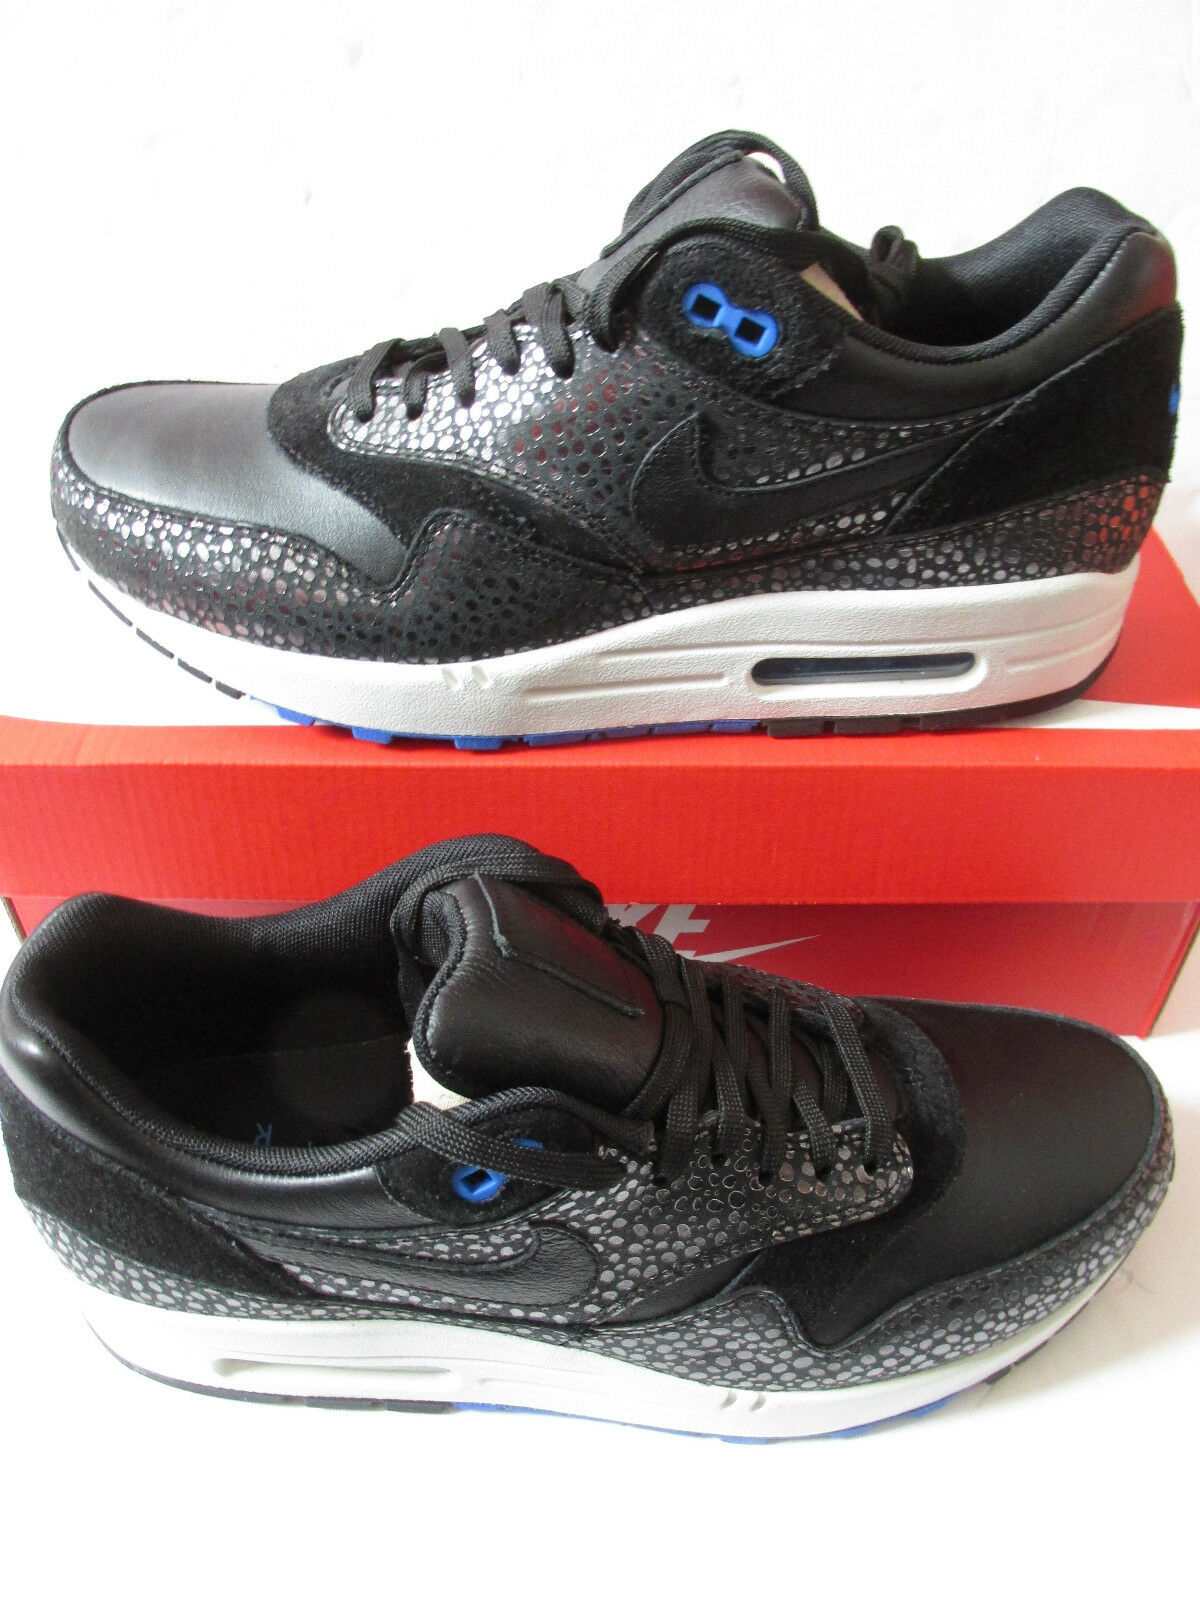 nike air max 1 deluxe mens trainers 684708 001 sneakers shoes